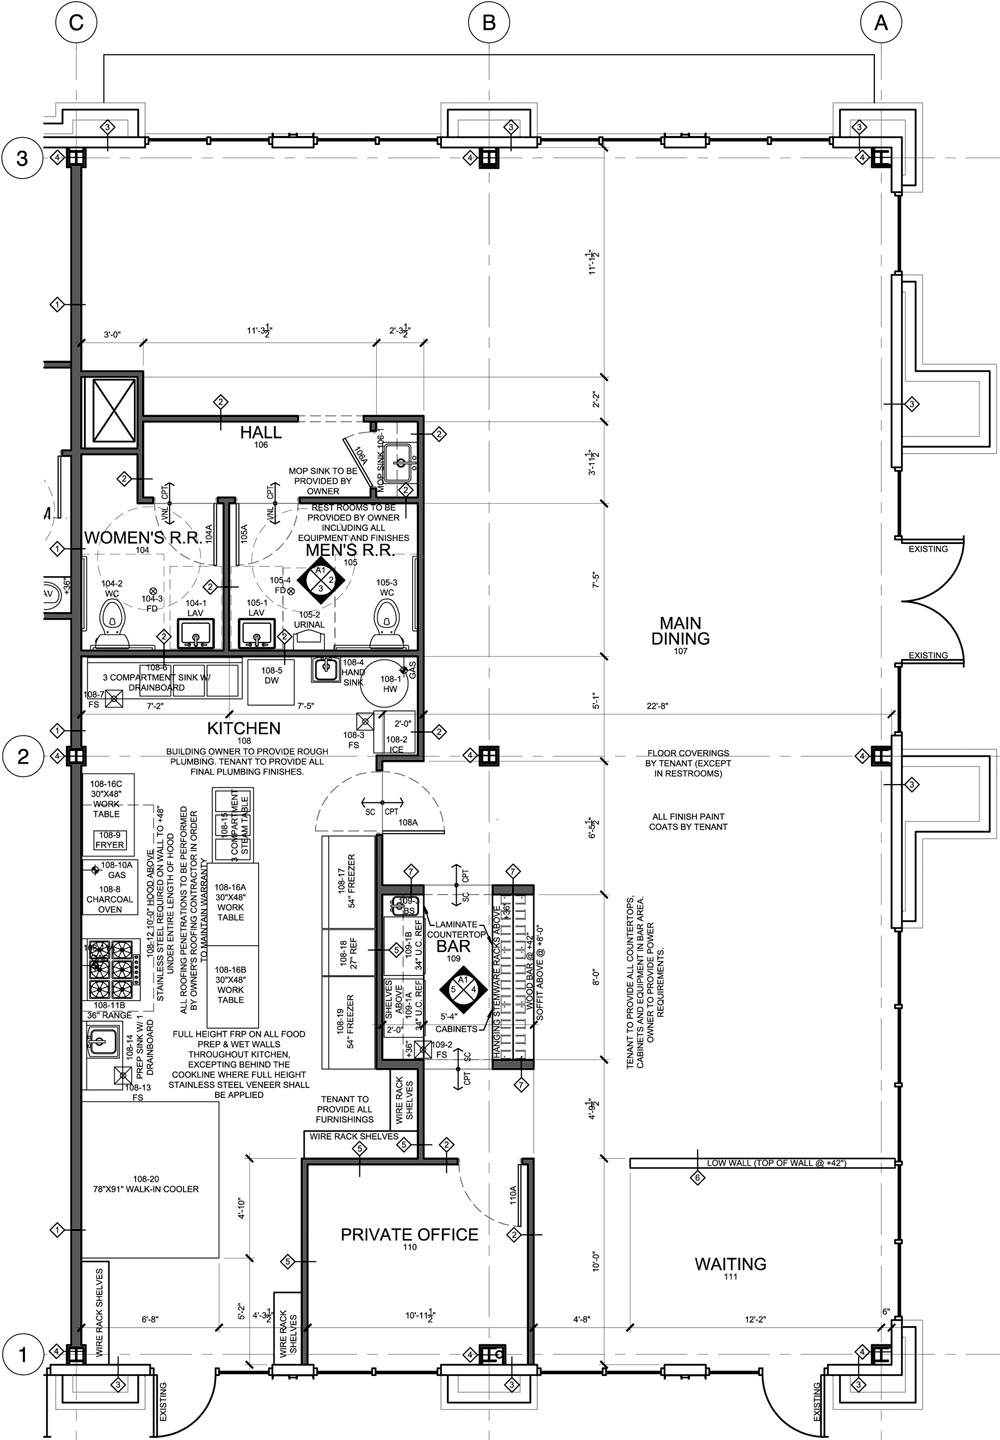 Restaurant Floor Plan For Tenant Improvement Taste Of